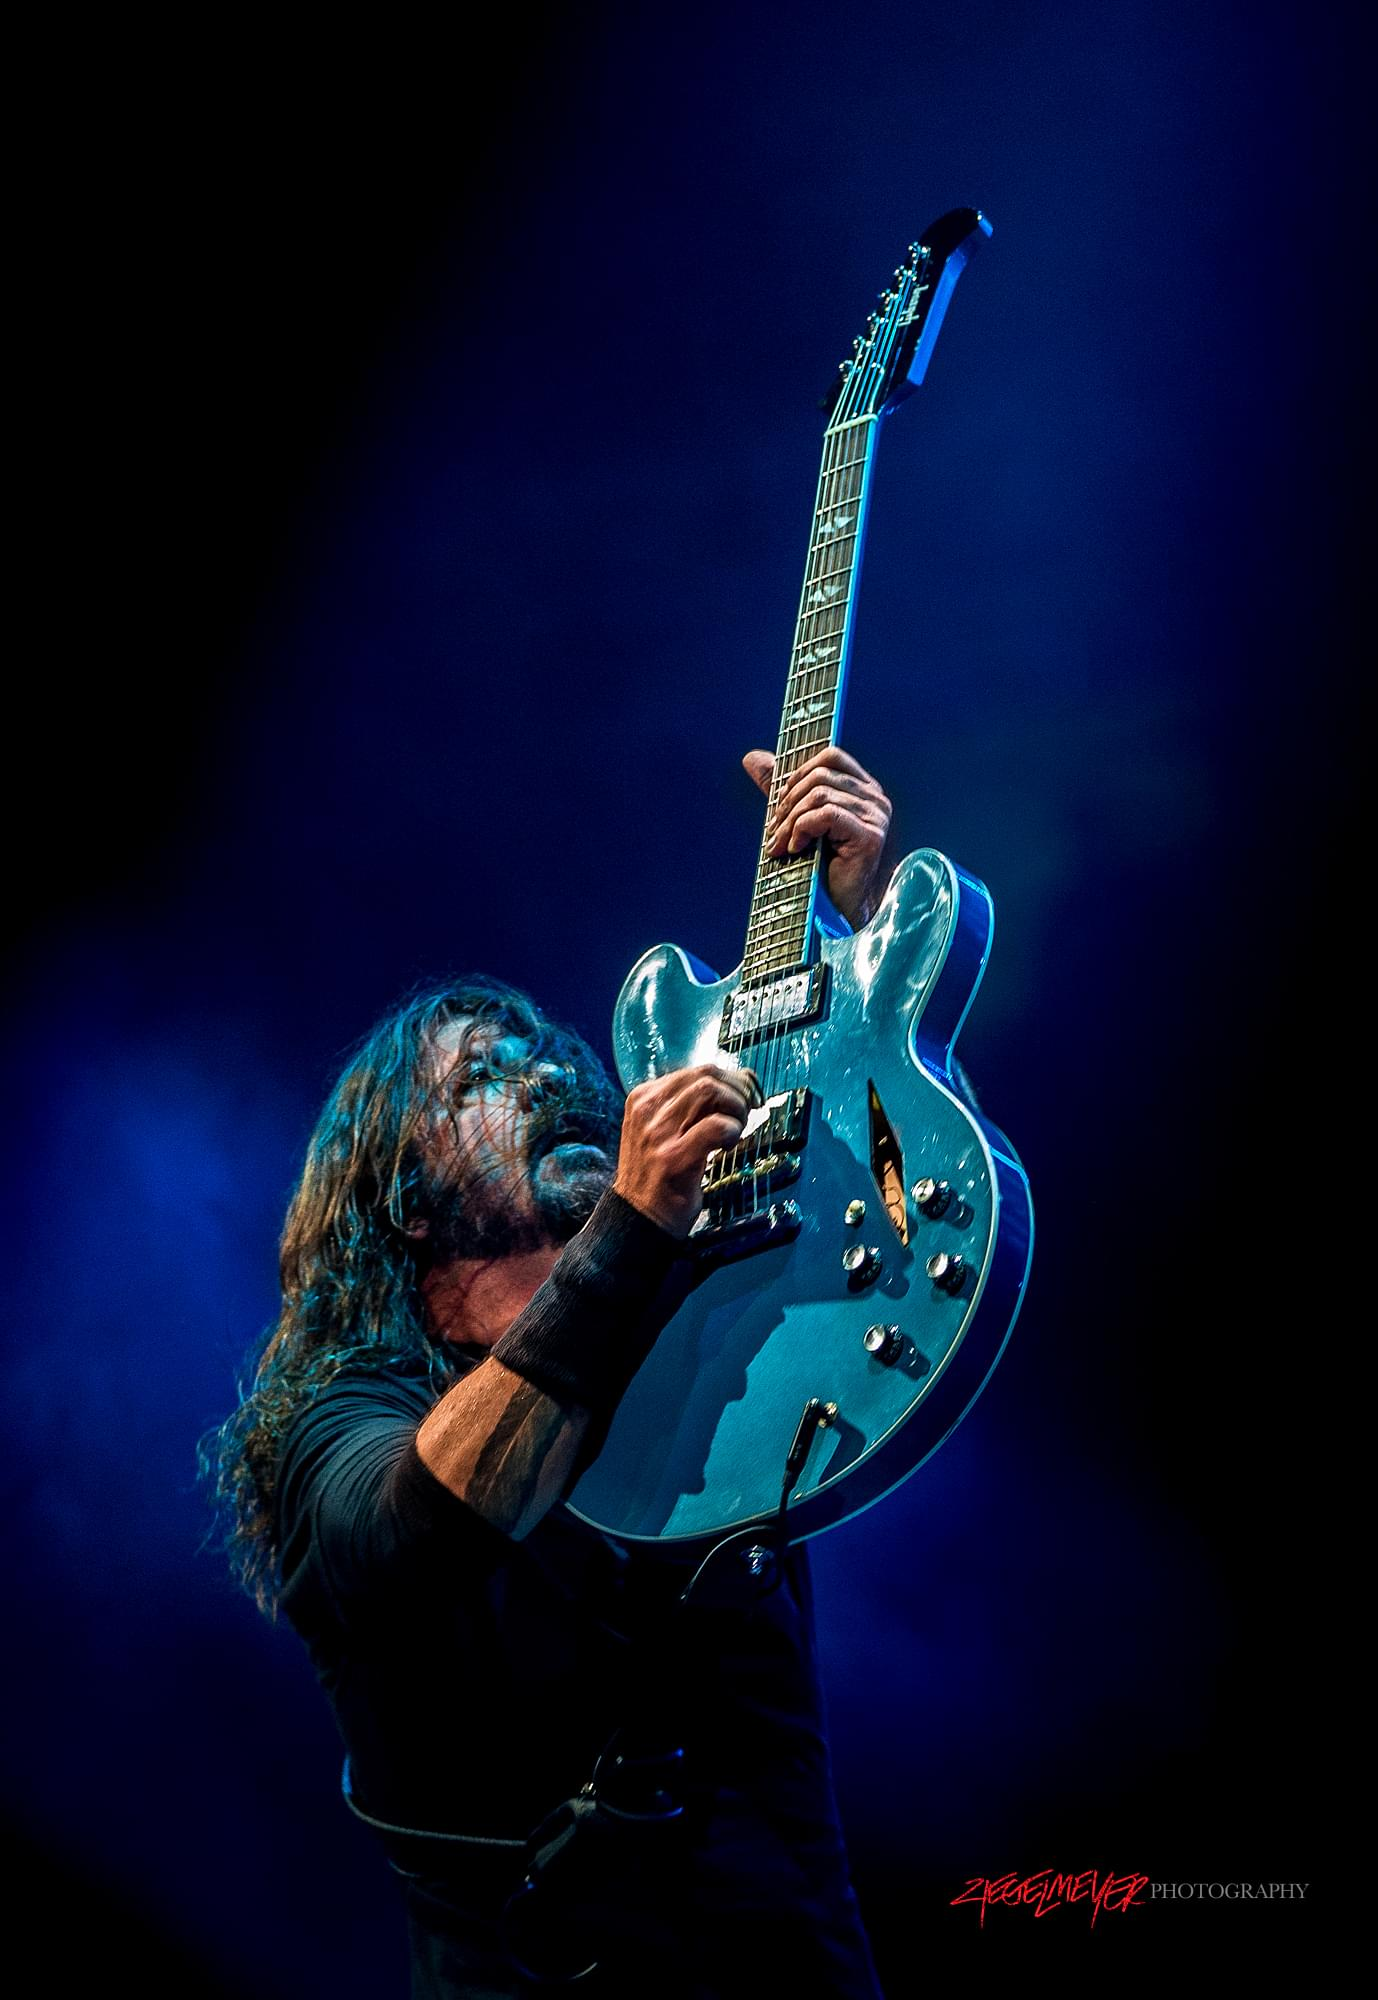 Foo_Fighters-8926_-¬2017_Steve_Ziegelmeyer